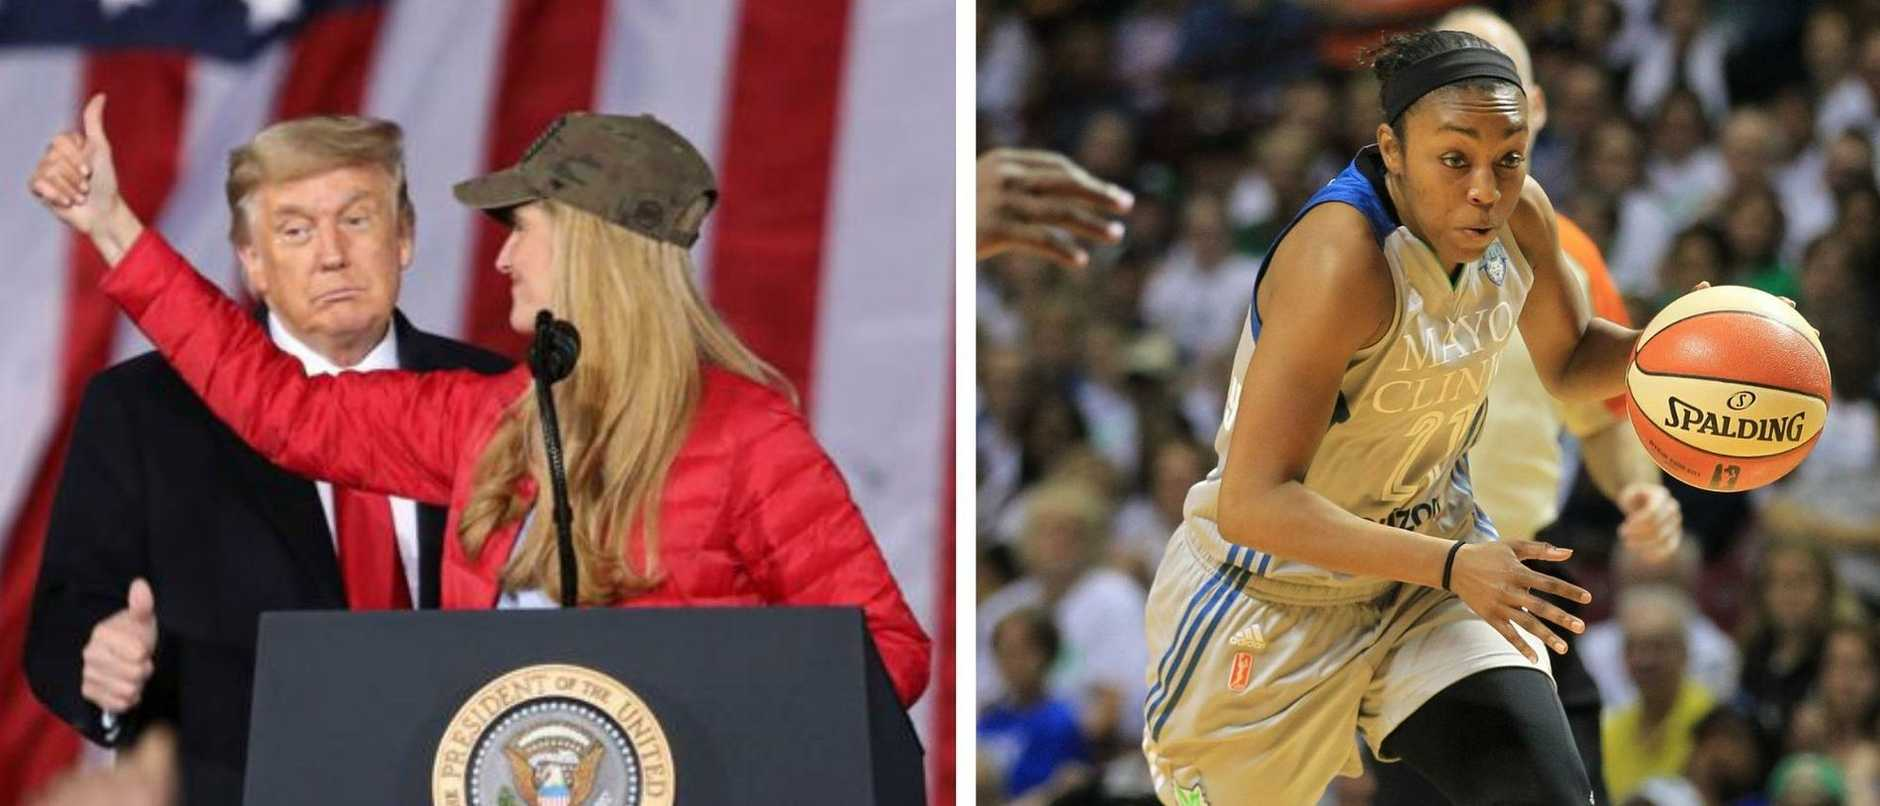 An ironic twist has seen a controversial team owner and Republican senator ousted in a historic moment for the WNBA.